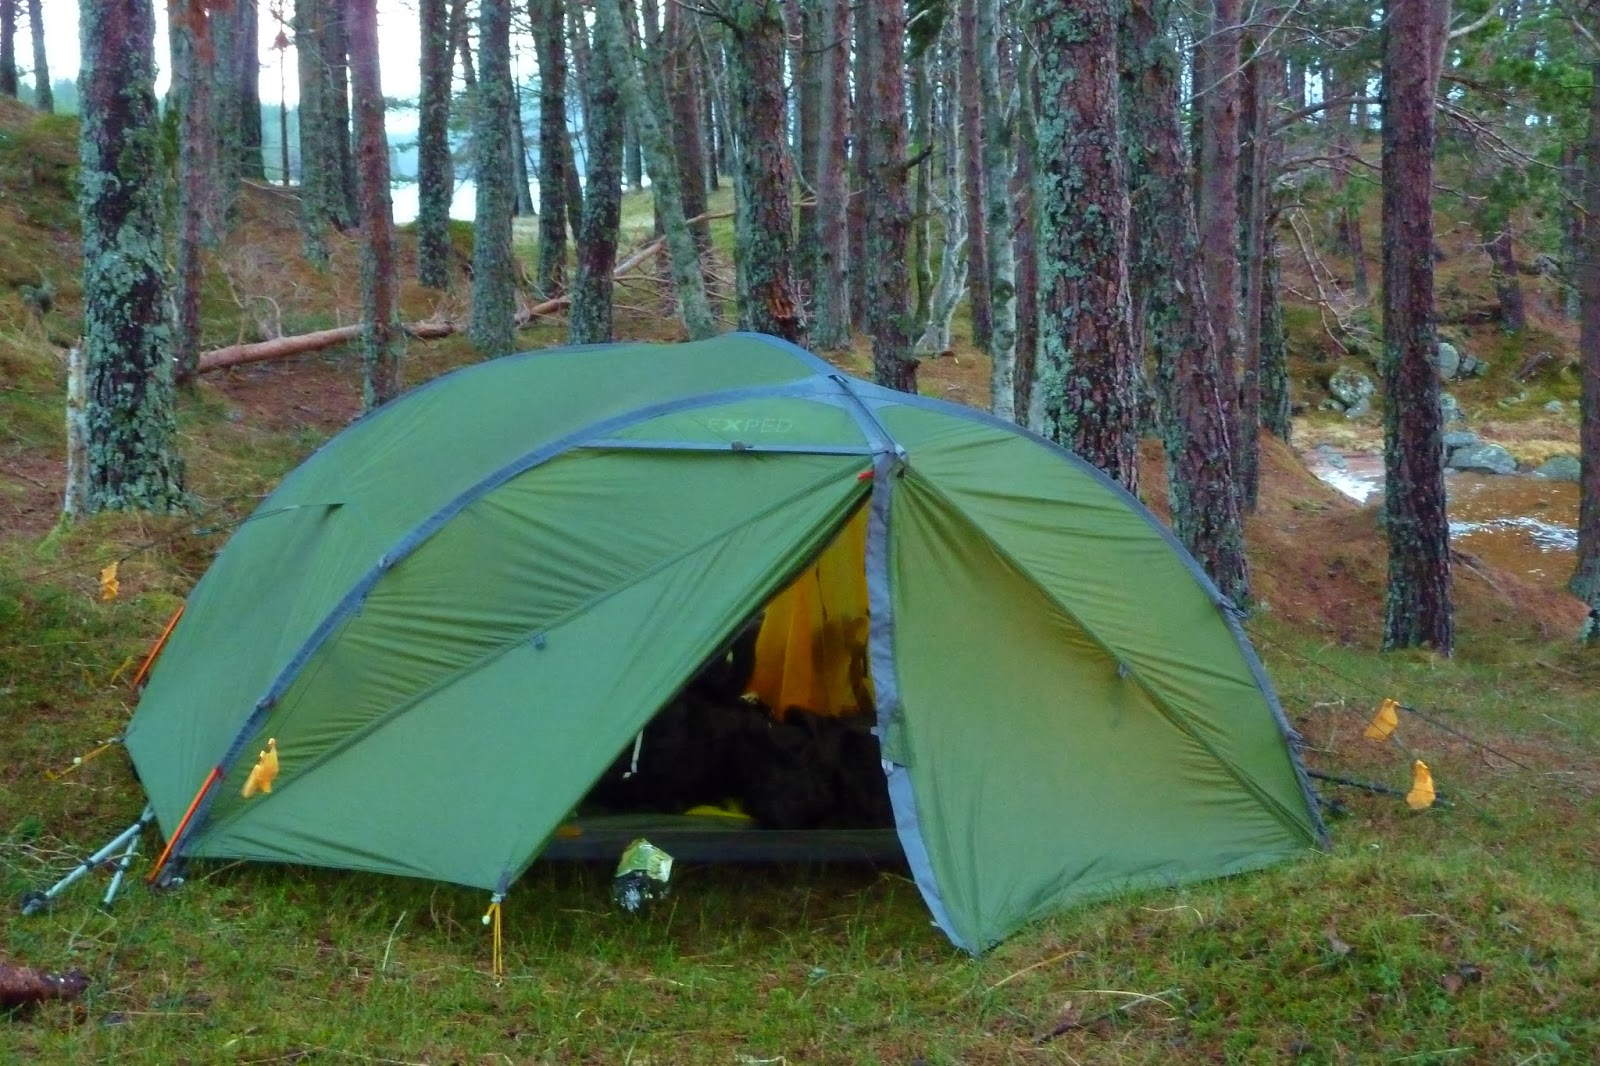 The Venus II is a spacious two-person three season backpacking or cycle touring tent. The first thing we absolutely loved about the tent was the space ... & the outdoor diaries: Tent review - Exped Venus II Ultralight